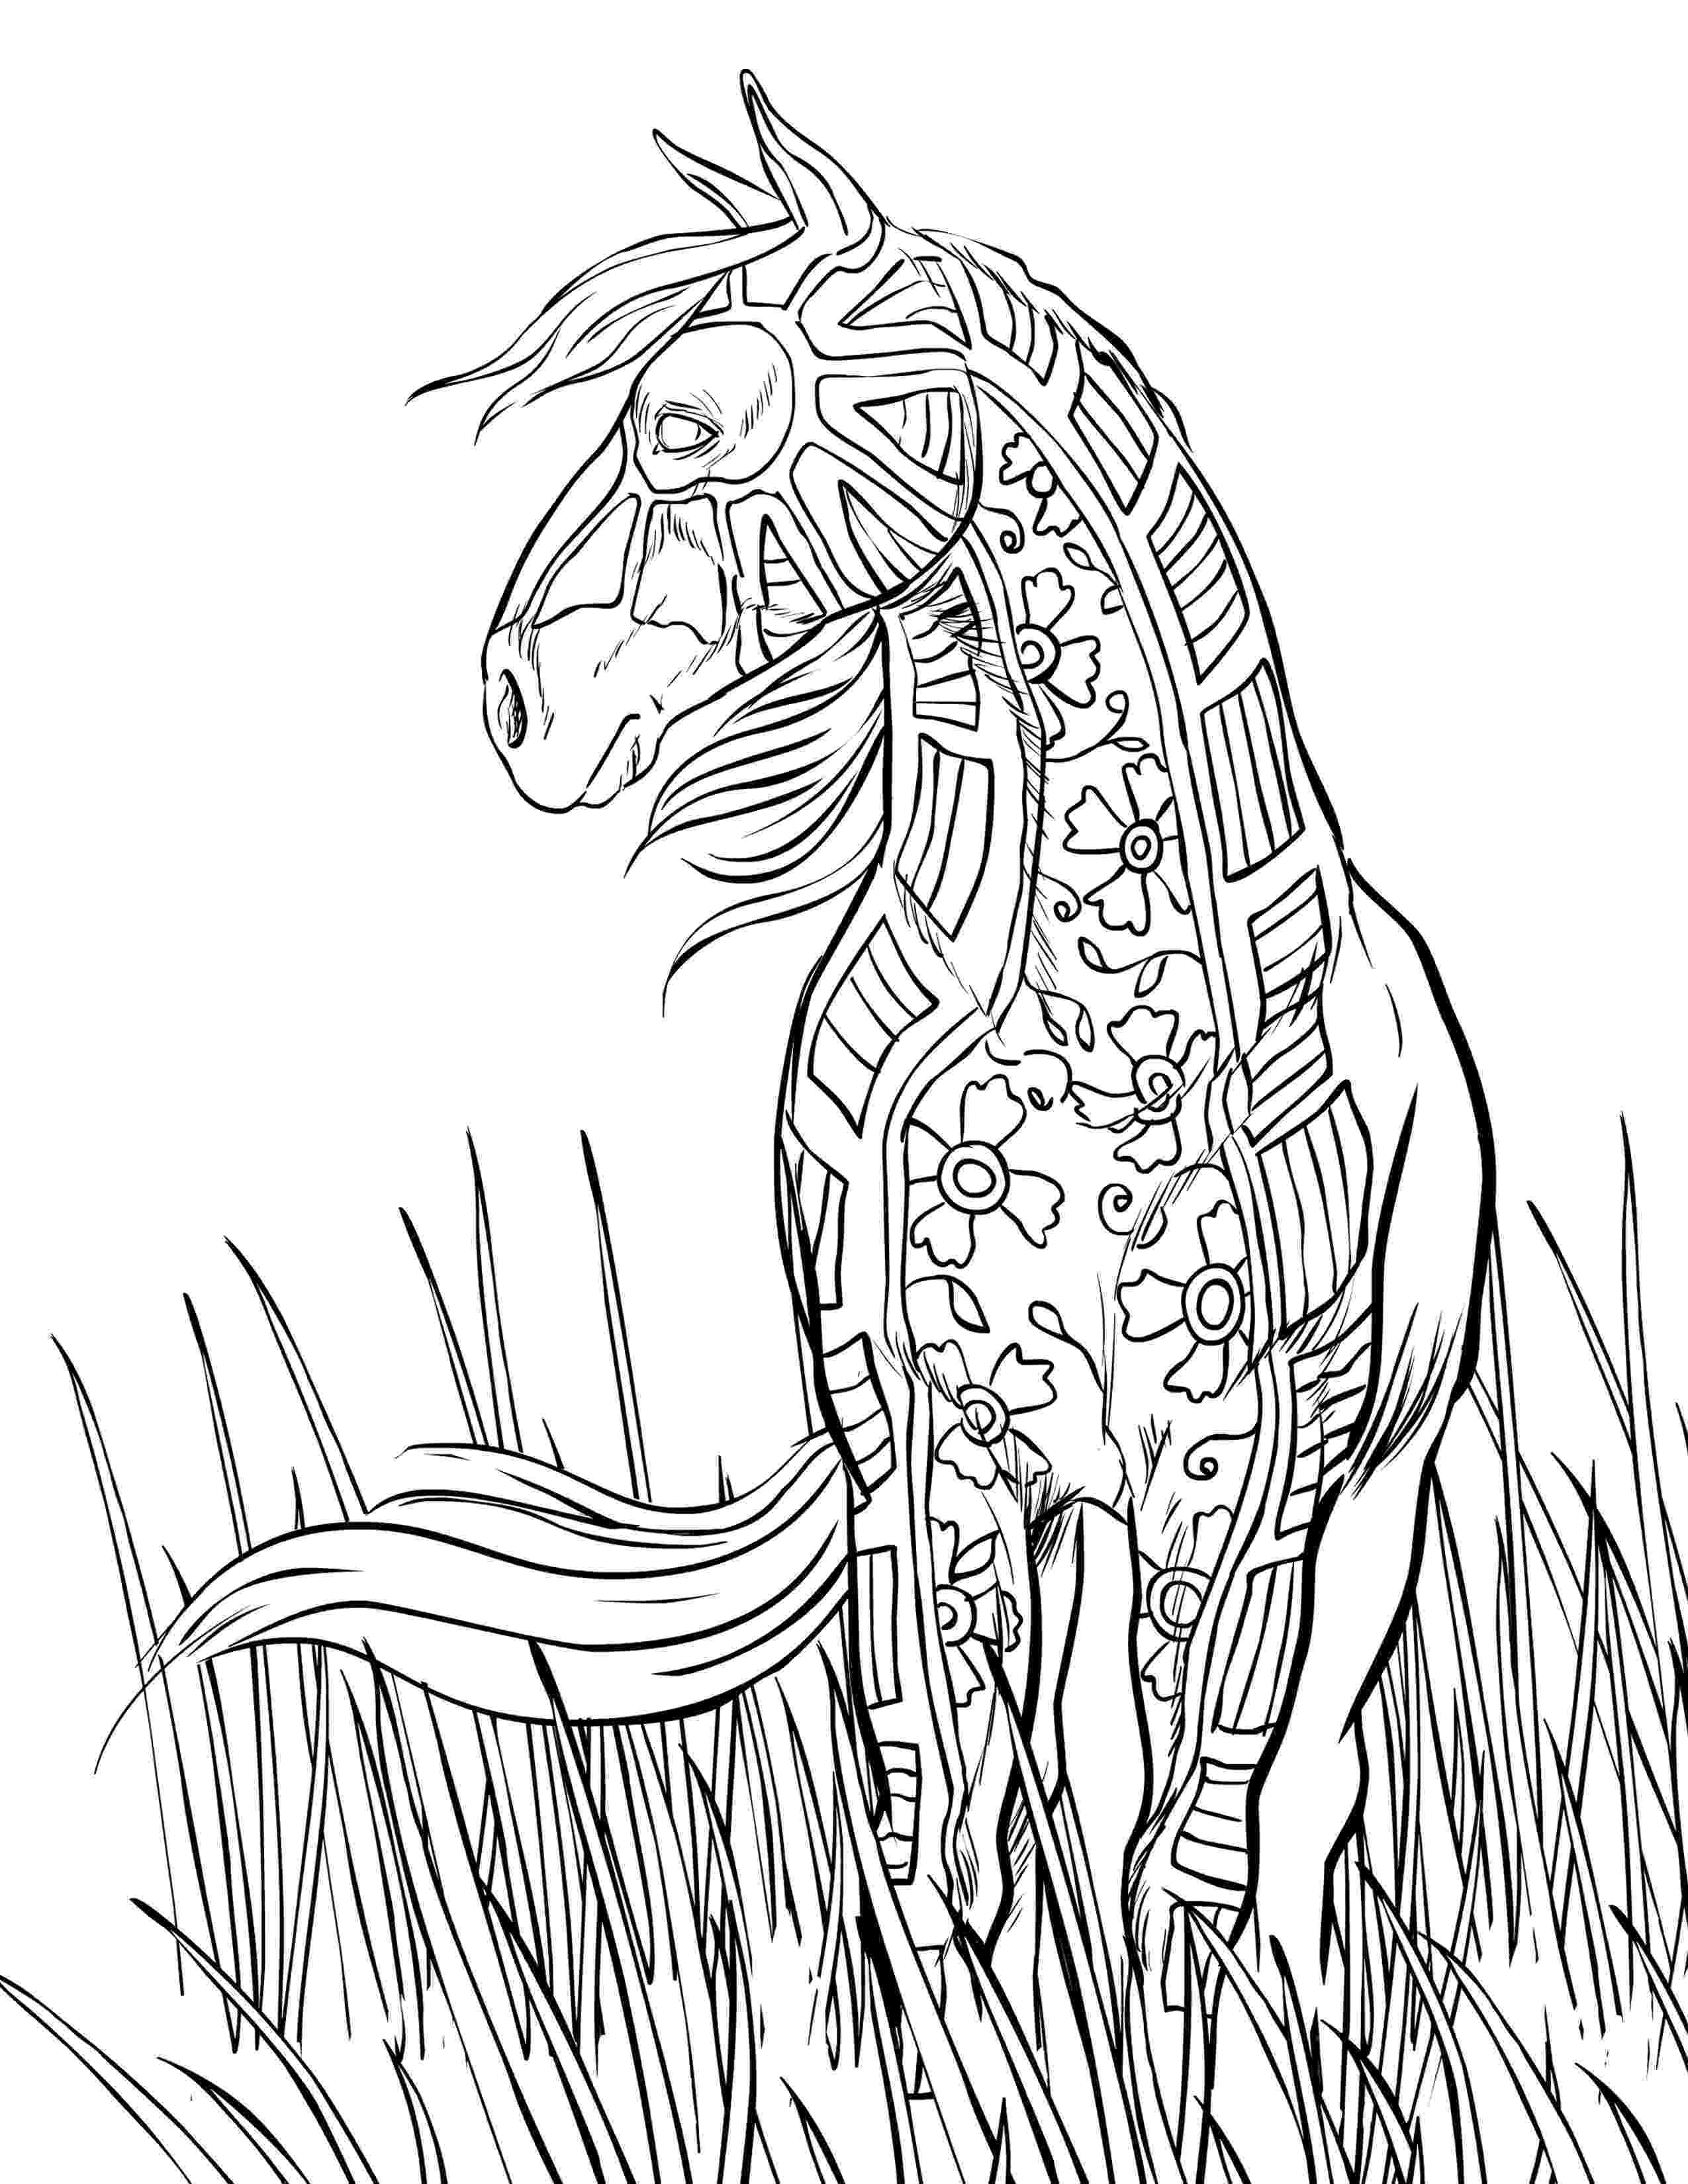 printable horse coloring pages for adults horse coloring pages for adults adult coloring pages horse adults pages coloring for printable